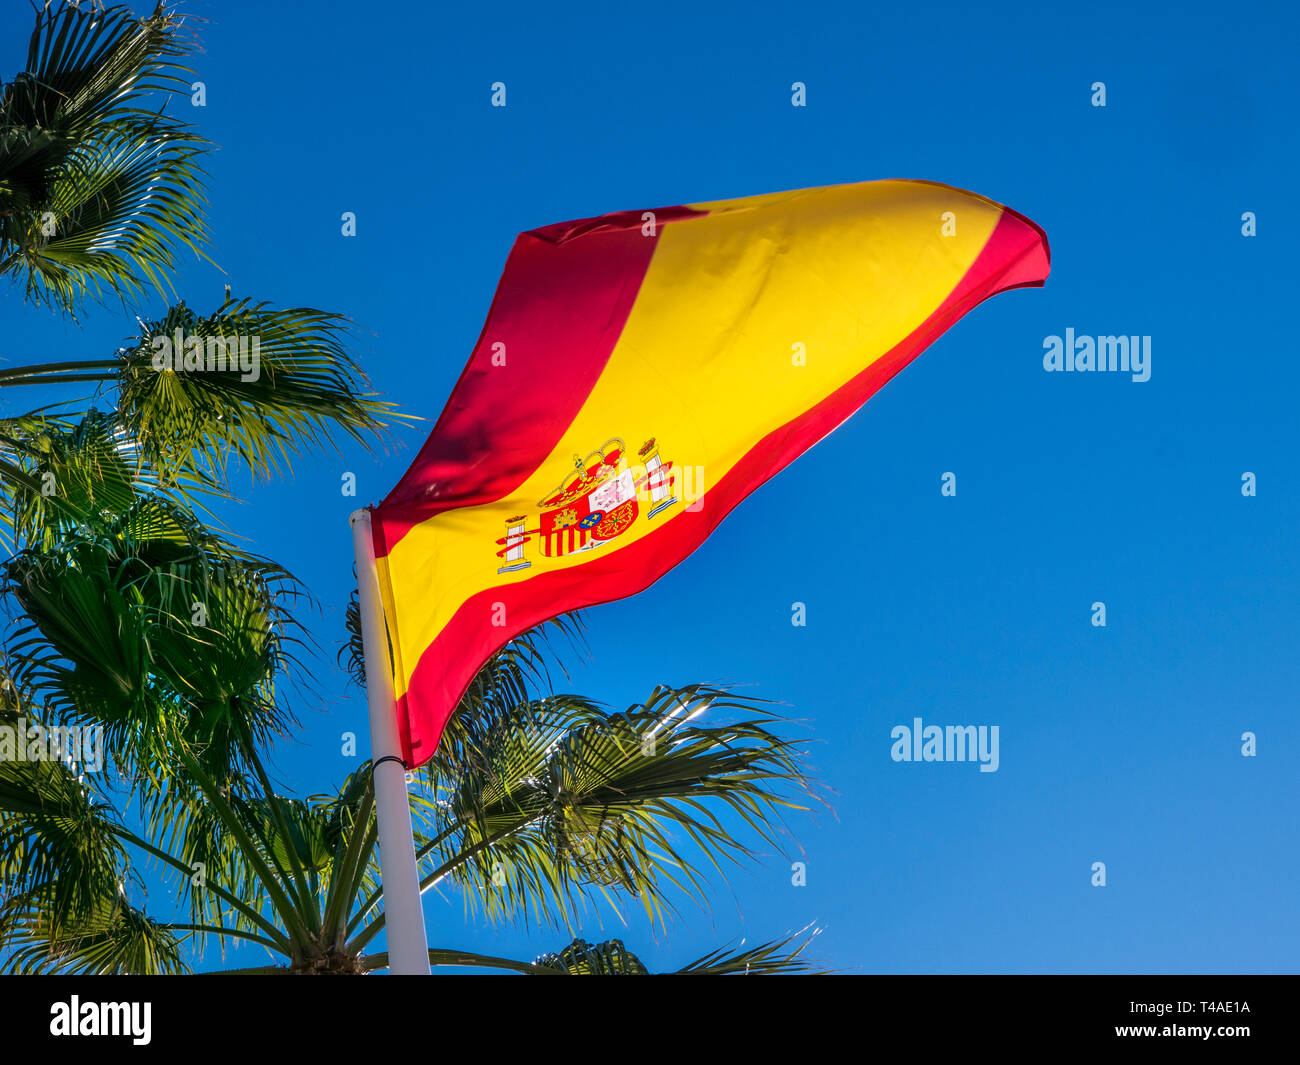 Spanish Flag undulating and unfurling in a sea breeze on flagpole with palm trees behind at San Pedro de Alcantara Malaga Costa del Sol Spain - Stock Image